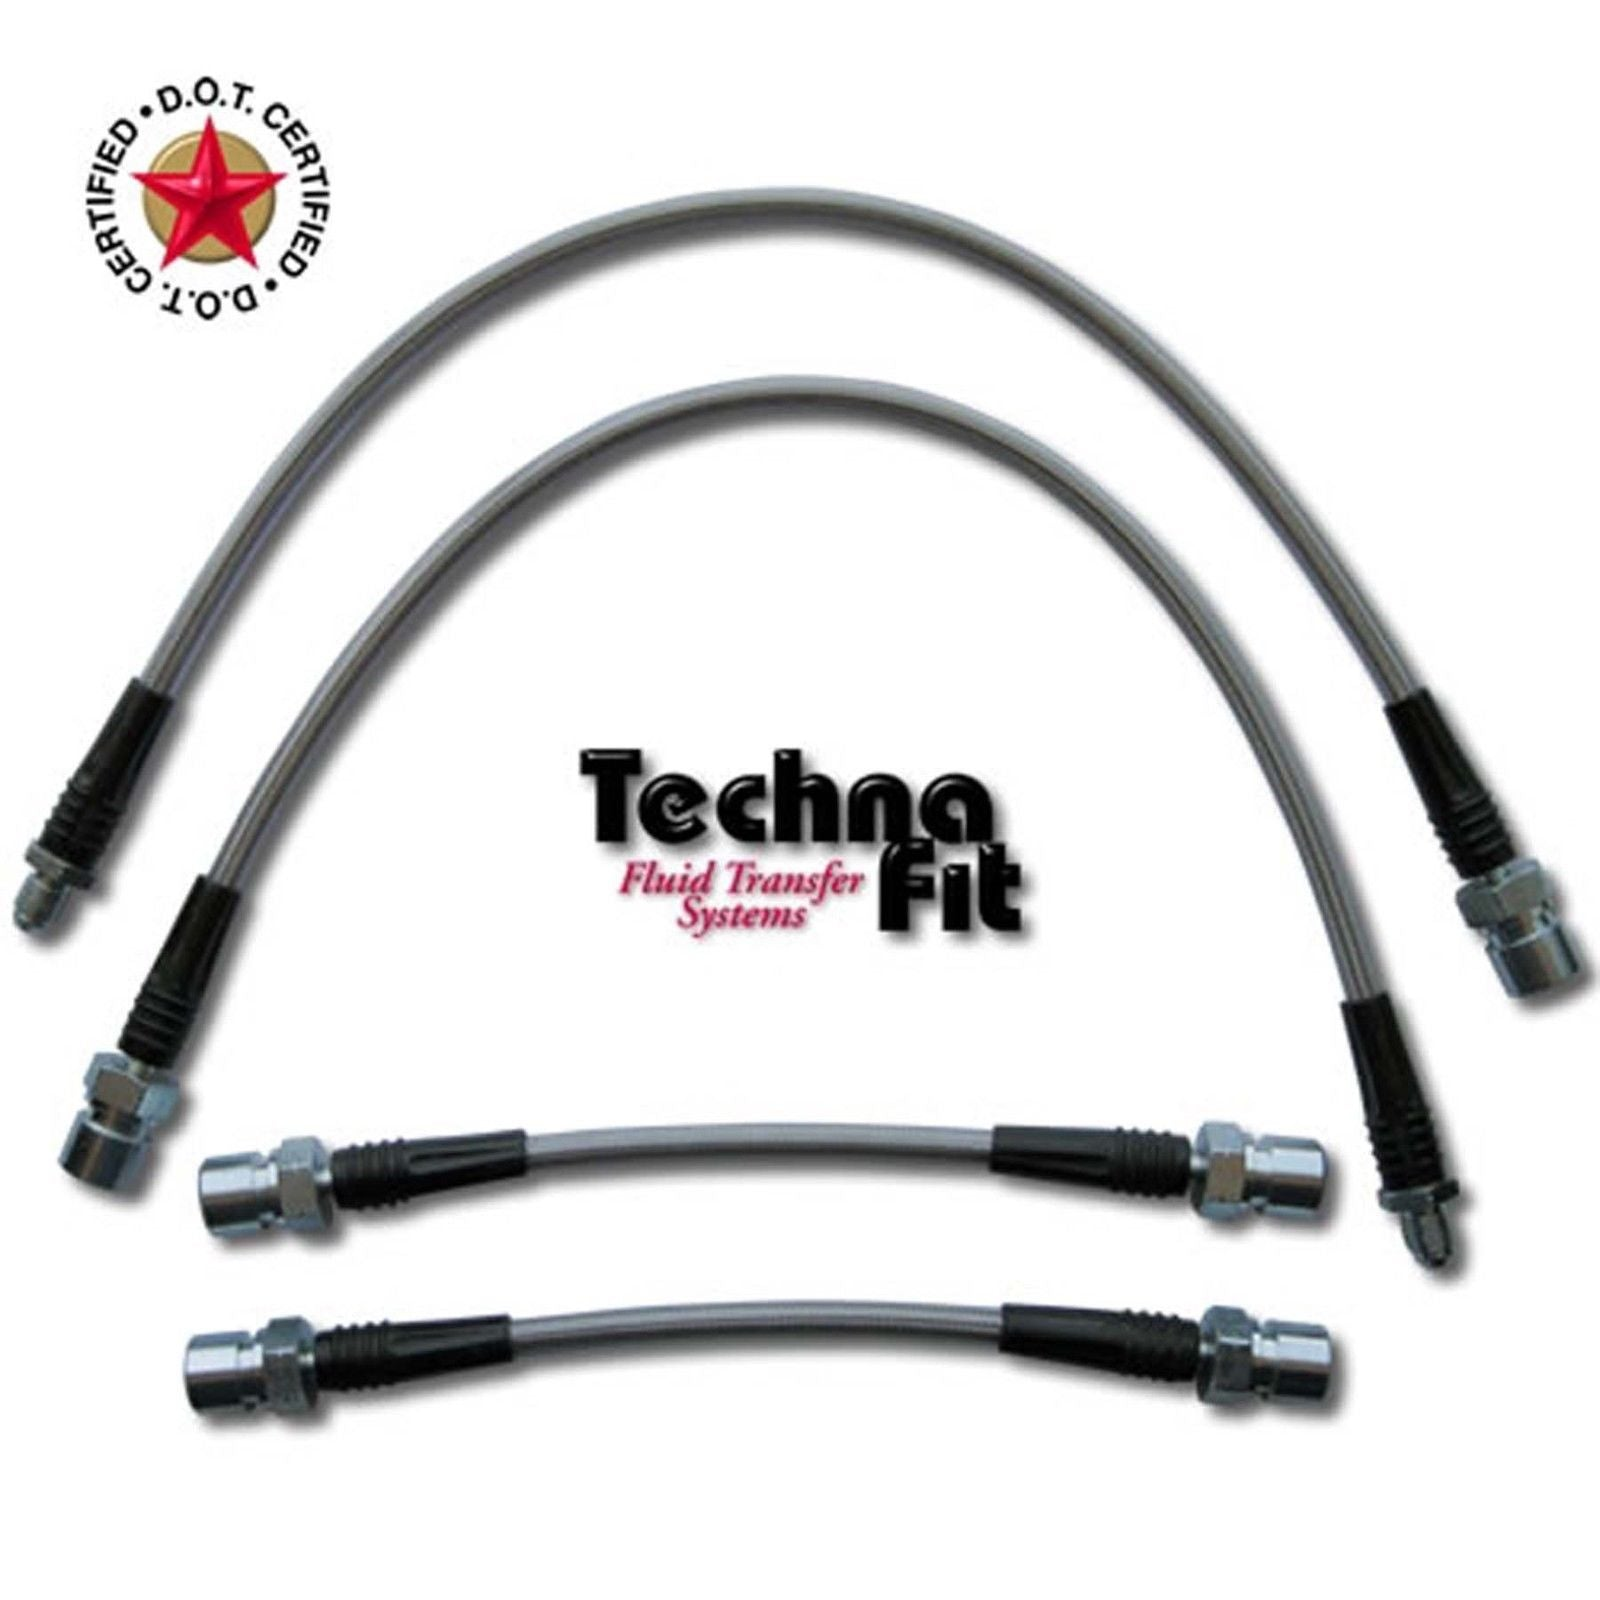 Techna-Fit Stainless Steel Brake Lines - 2009-15 Nissan Maxima - Front & Rear - NIS-1160